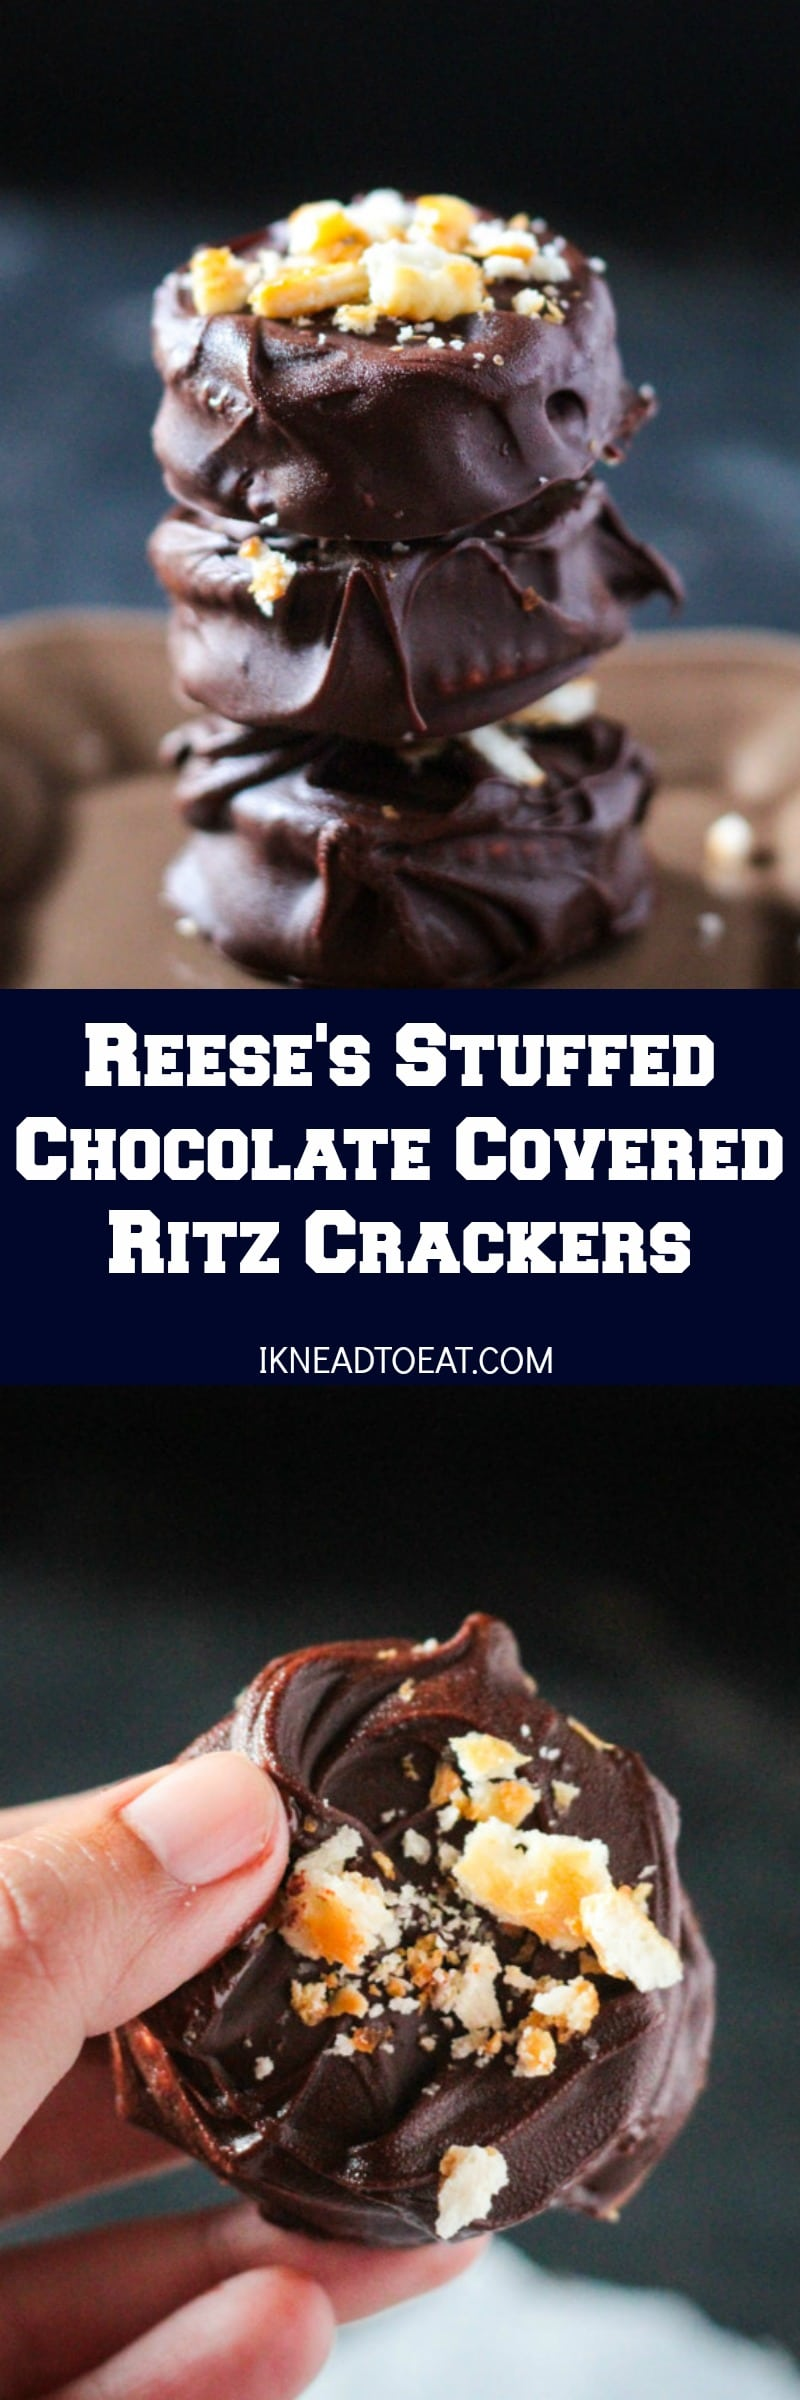 Reese's Stuffed Chocolate Covered Ritz Crackers